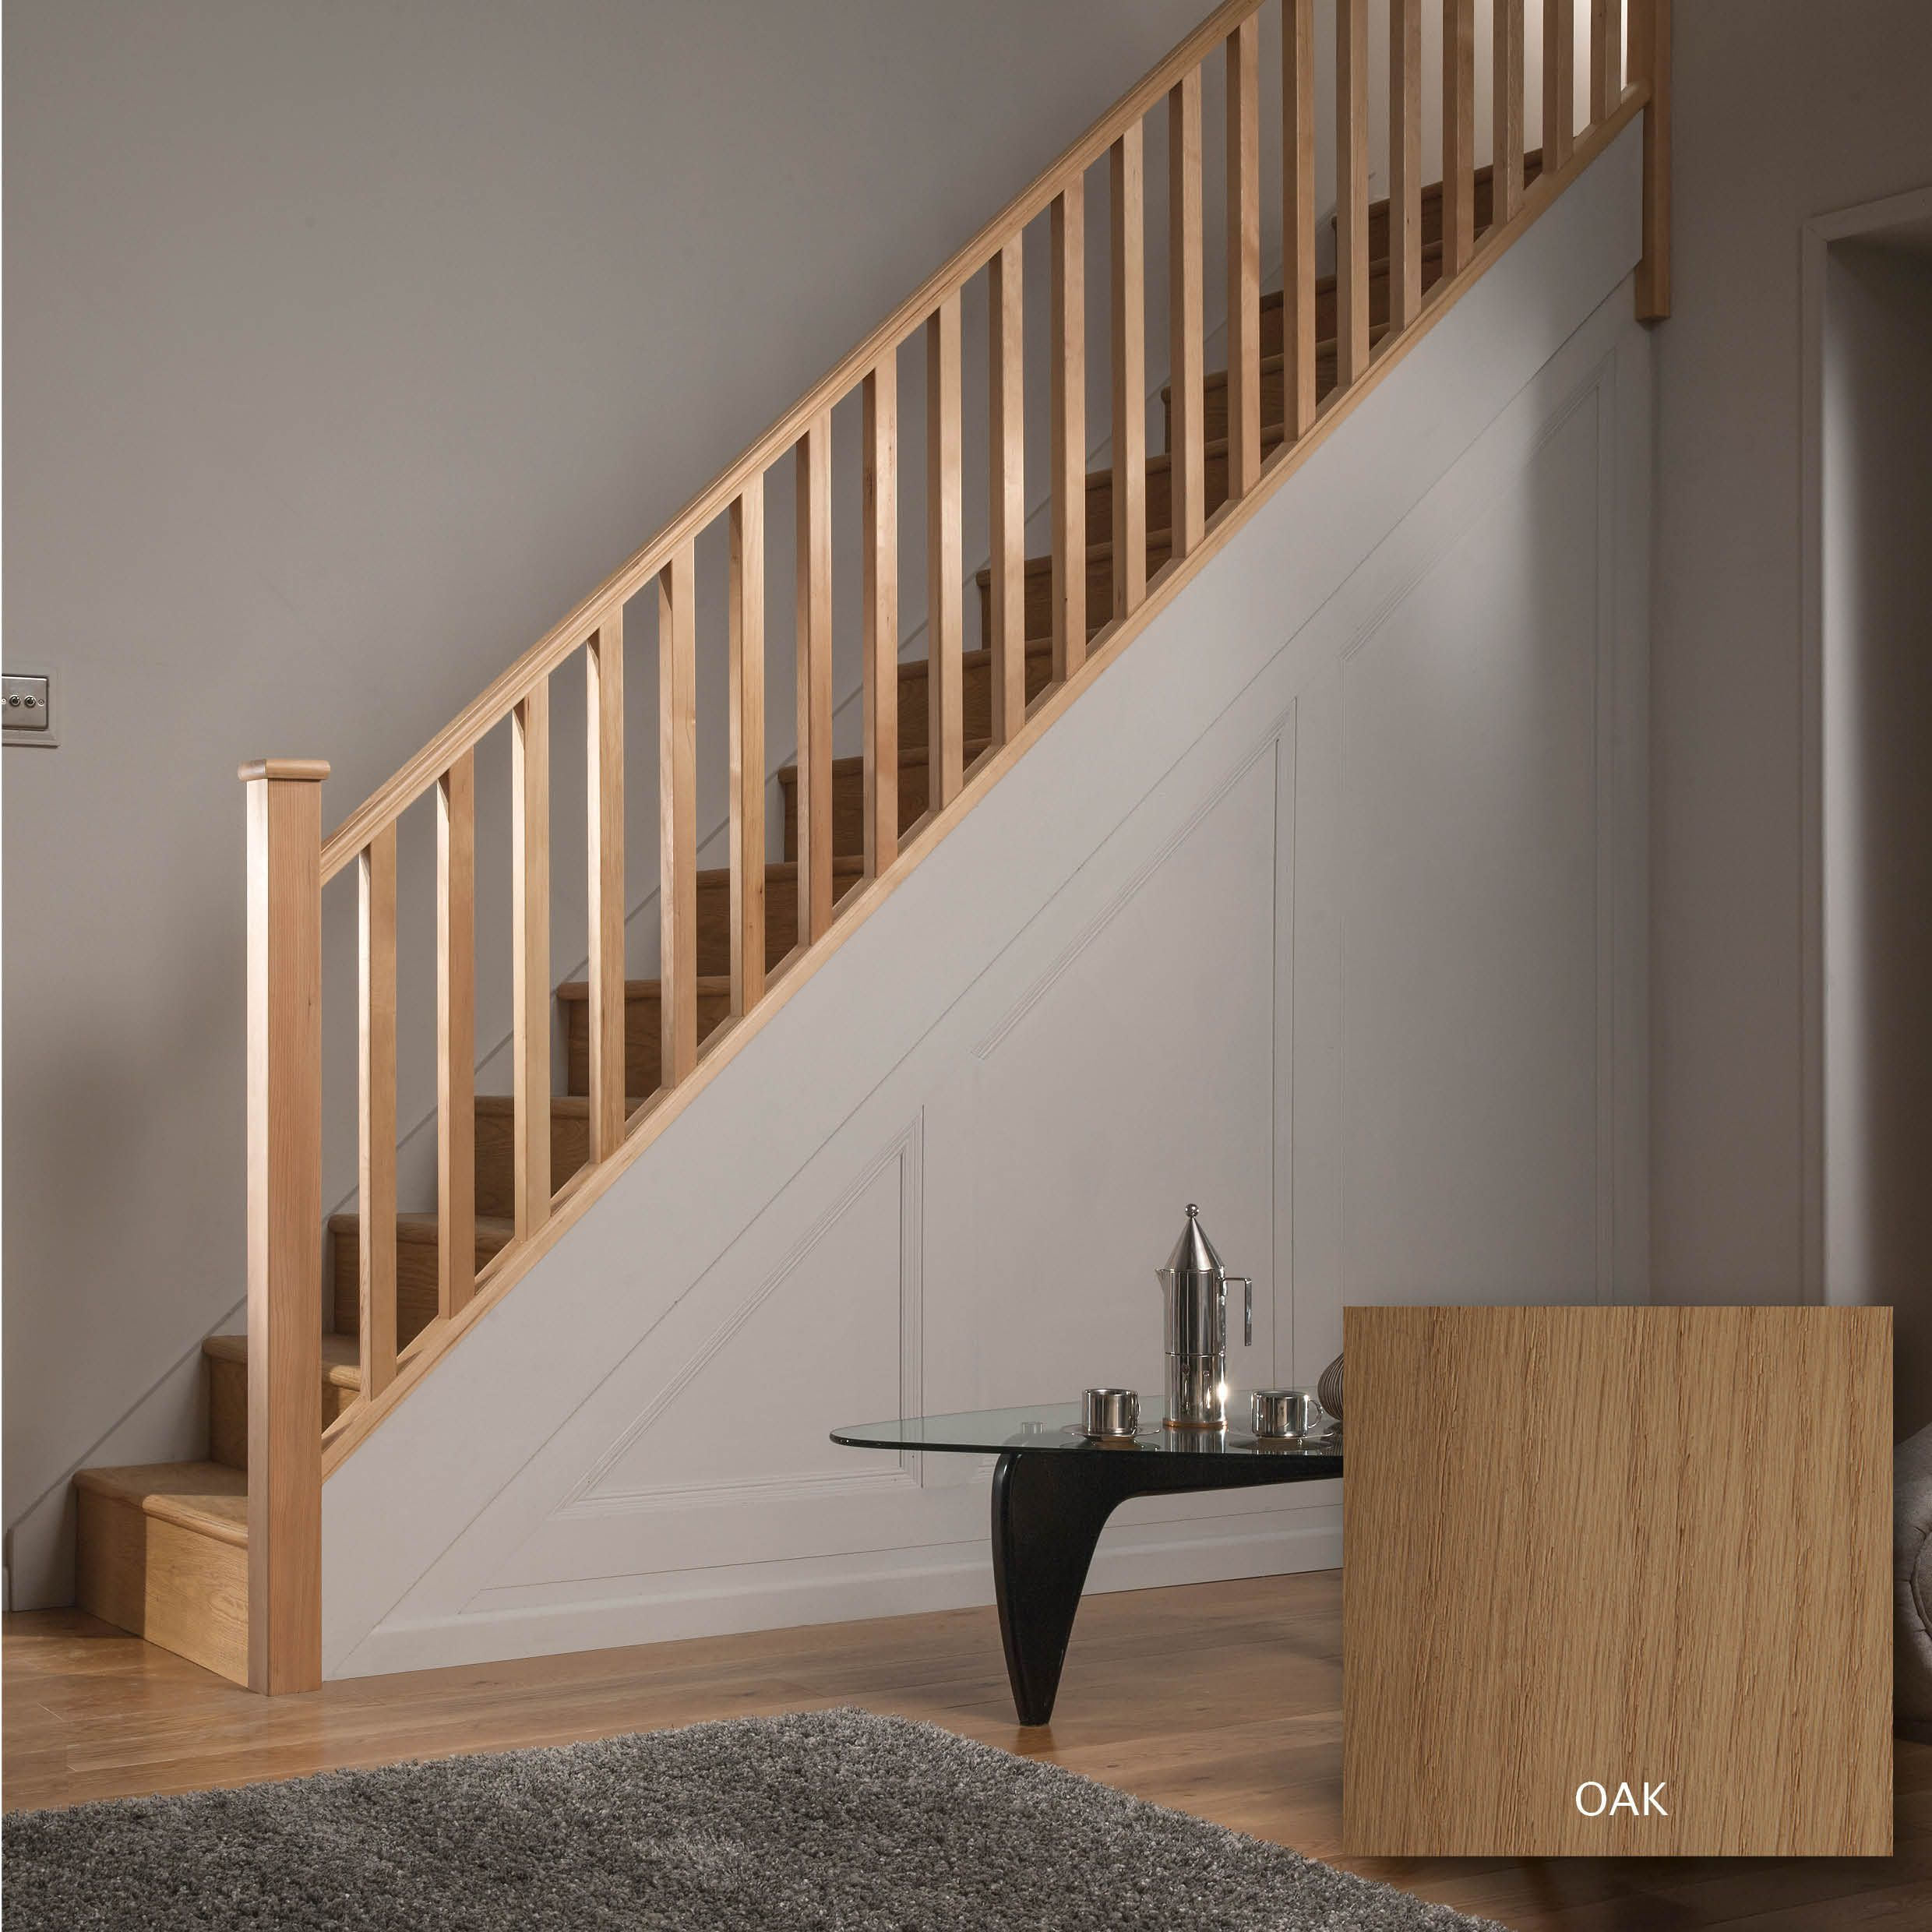 Square Oak 32mm Complete Banister Project Kit Departments Diy At B Amp Q Stair Railing Design Stair Railing Kits Stair Railing